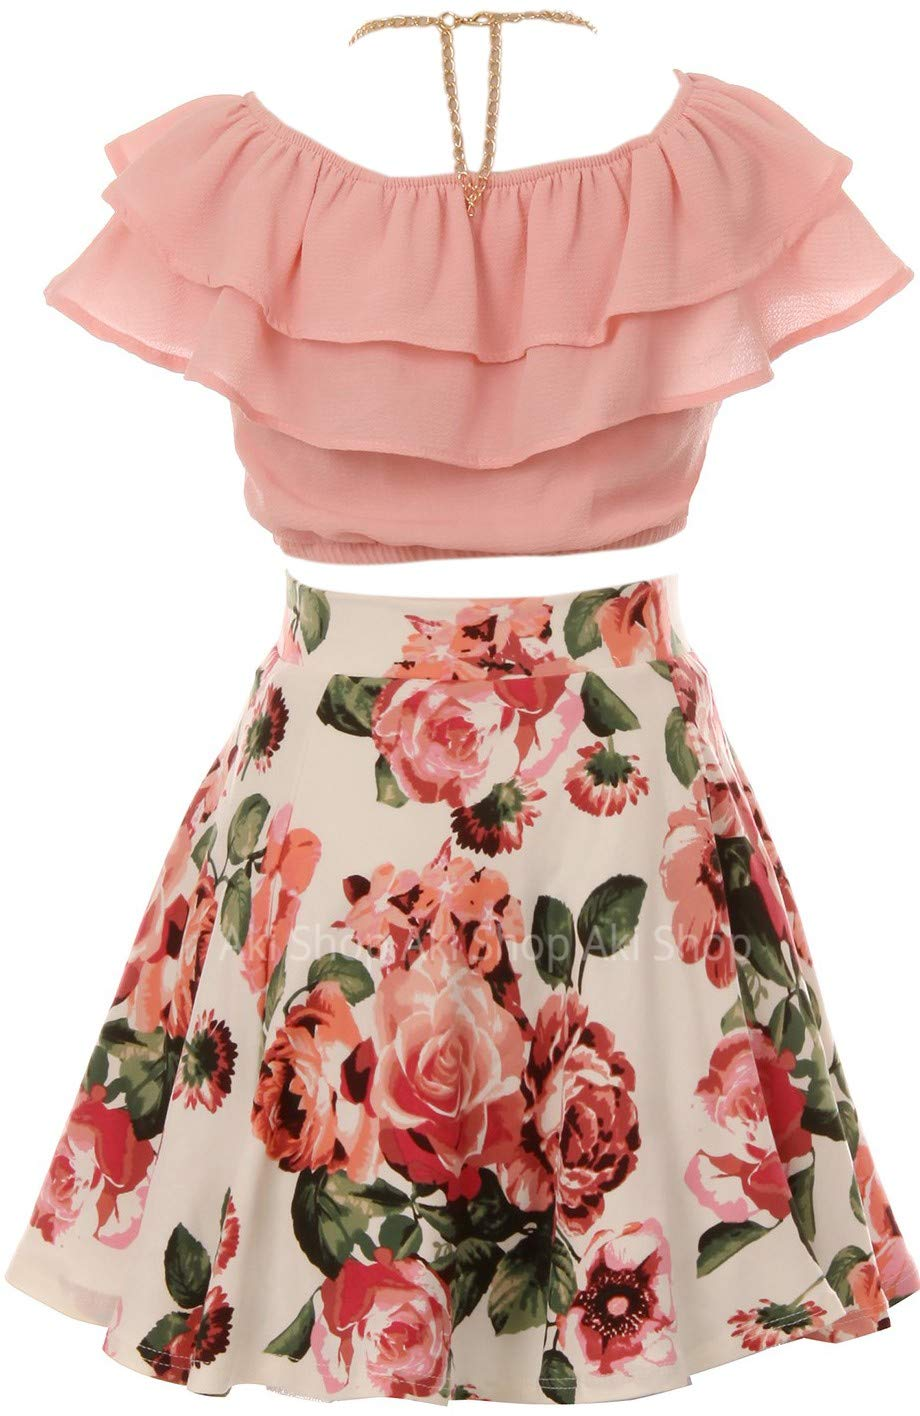 Cold Shoulder Crop Top Ruffle Layered Top Flower Girl Skirt Sets for Big Girl Blush 10 JKS 2130S by Aki_Dress (Image #3)